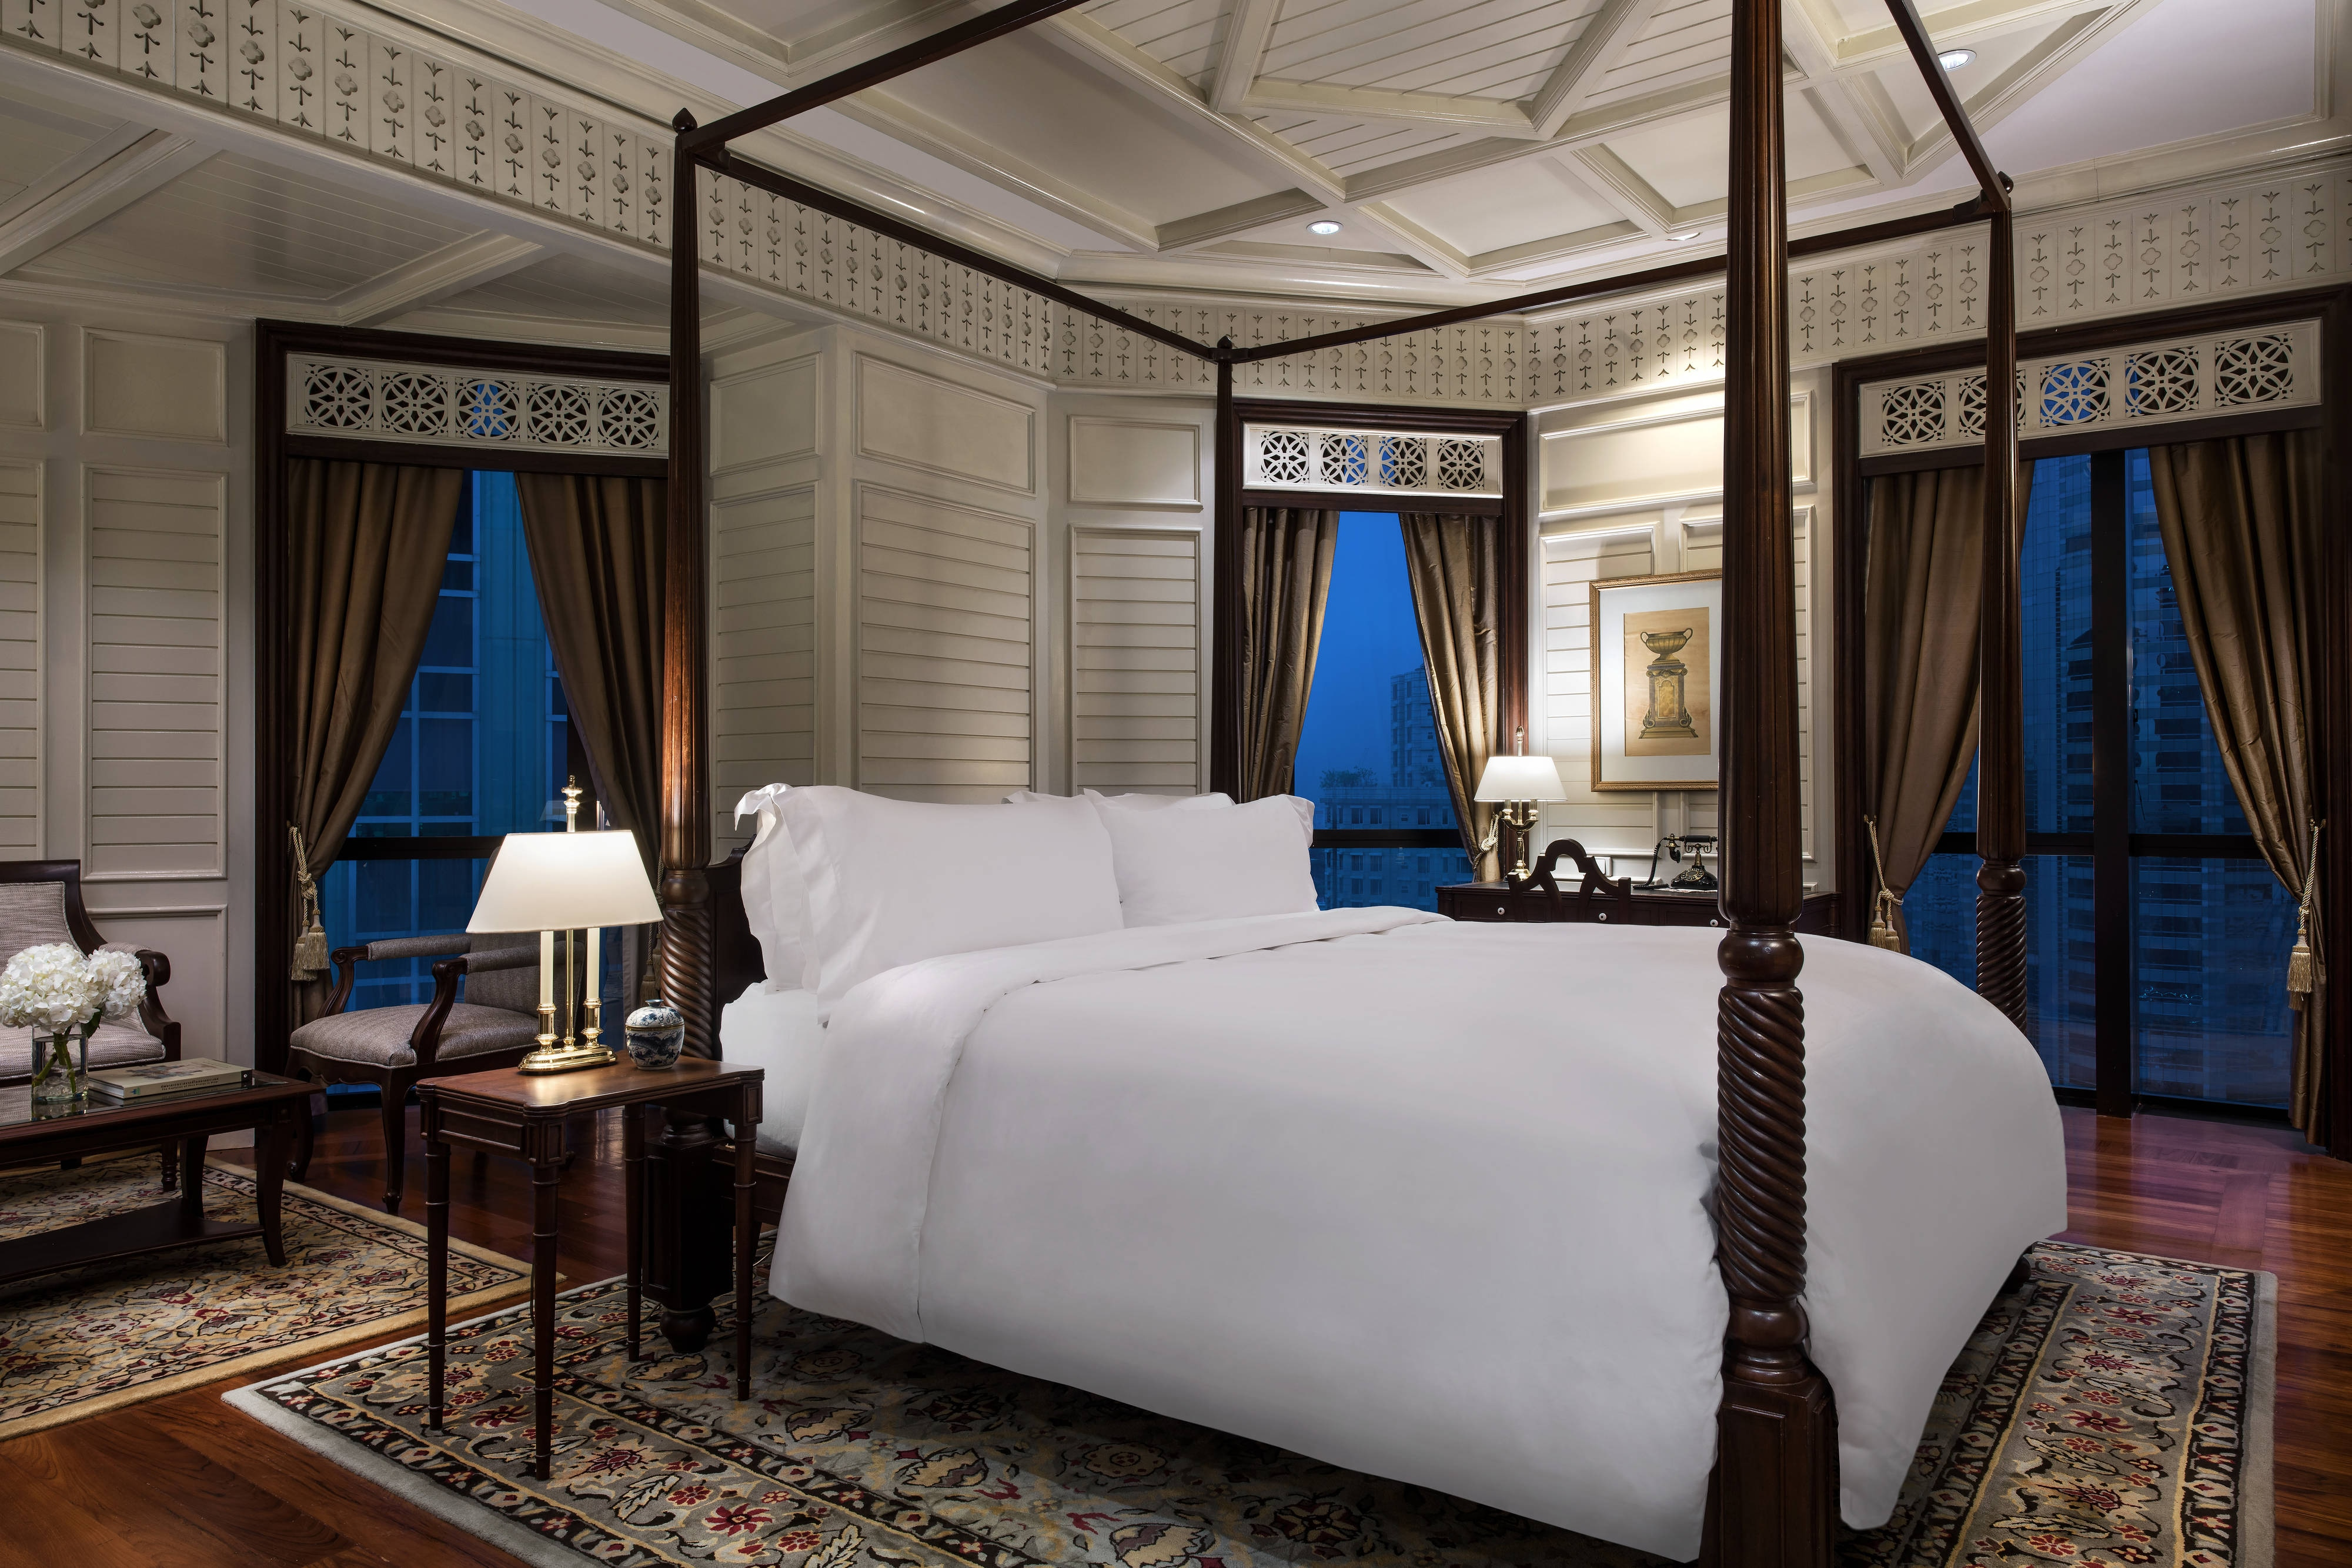 Kingsize Vimarn Siam Royal Themensuite